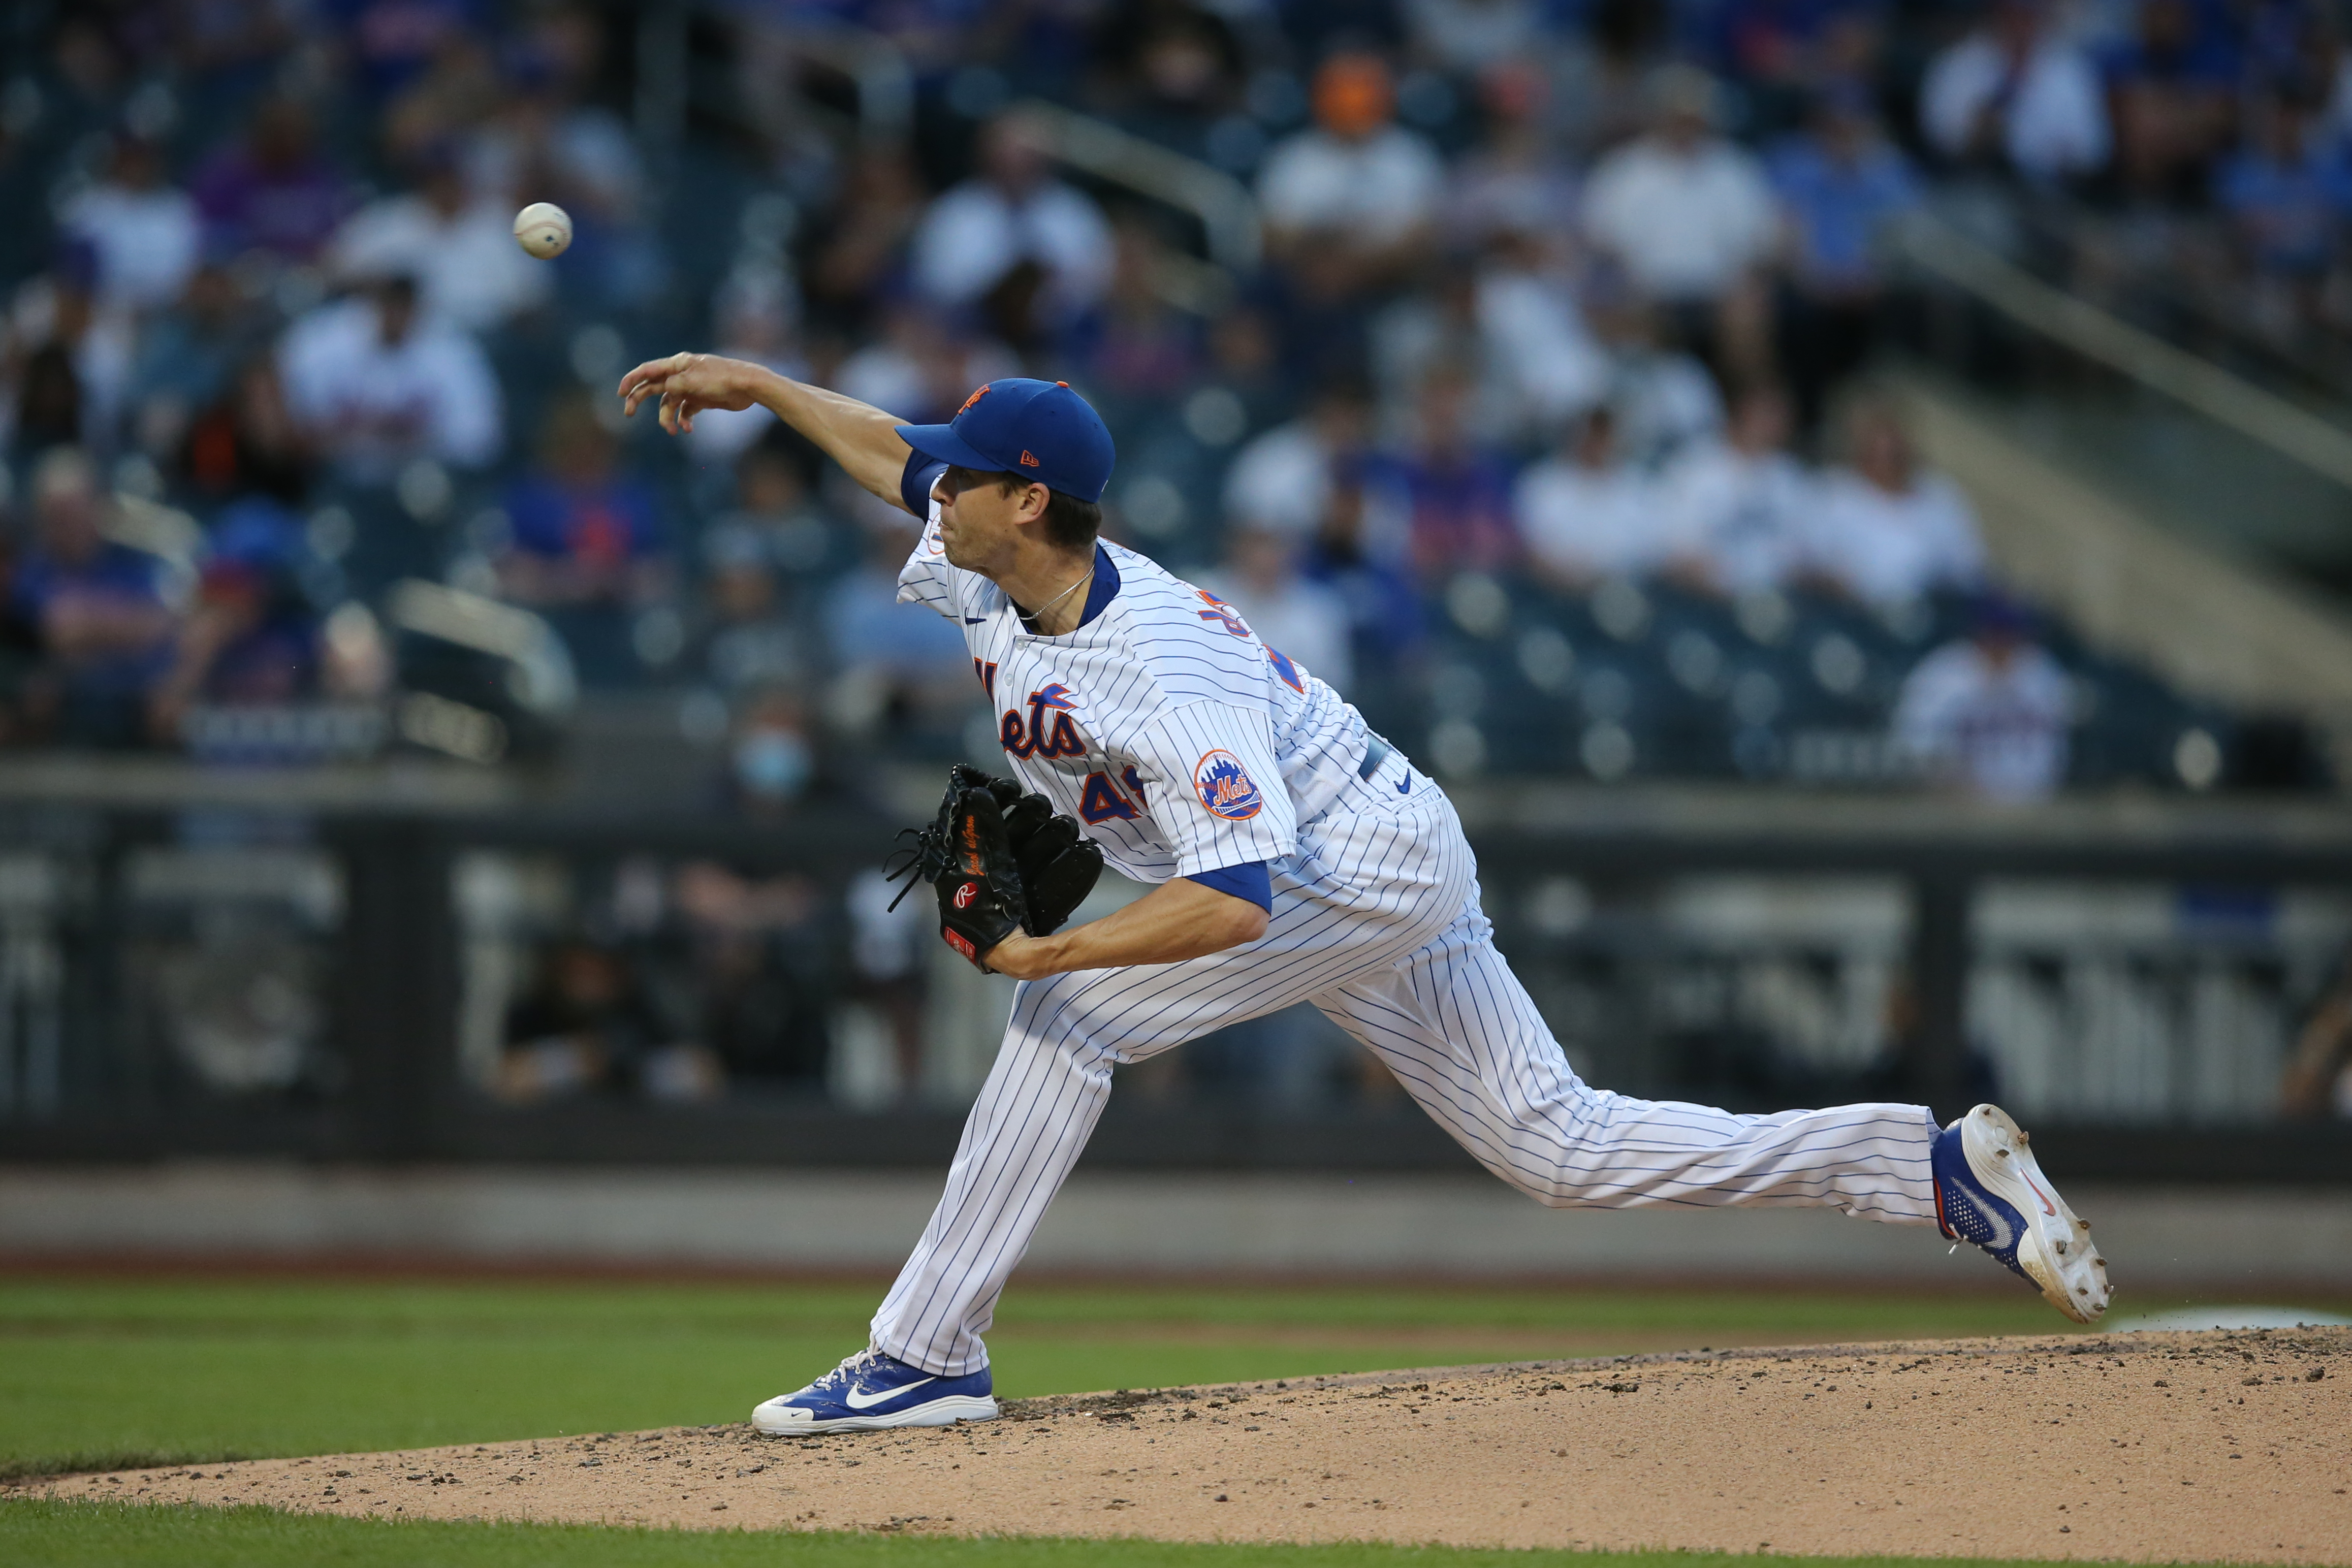 Jun 16, 2021; New York City, New York, USA; New York Mets starting pitcher Jacob deGrom (48) pitches against the Chicago Cubs during the third inning at Citi Field. Mandatory Credit: Brad Penner-USA TODAY Sports